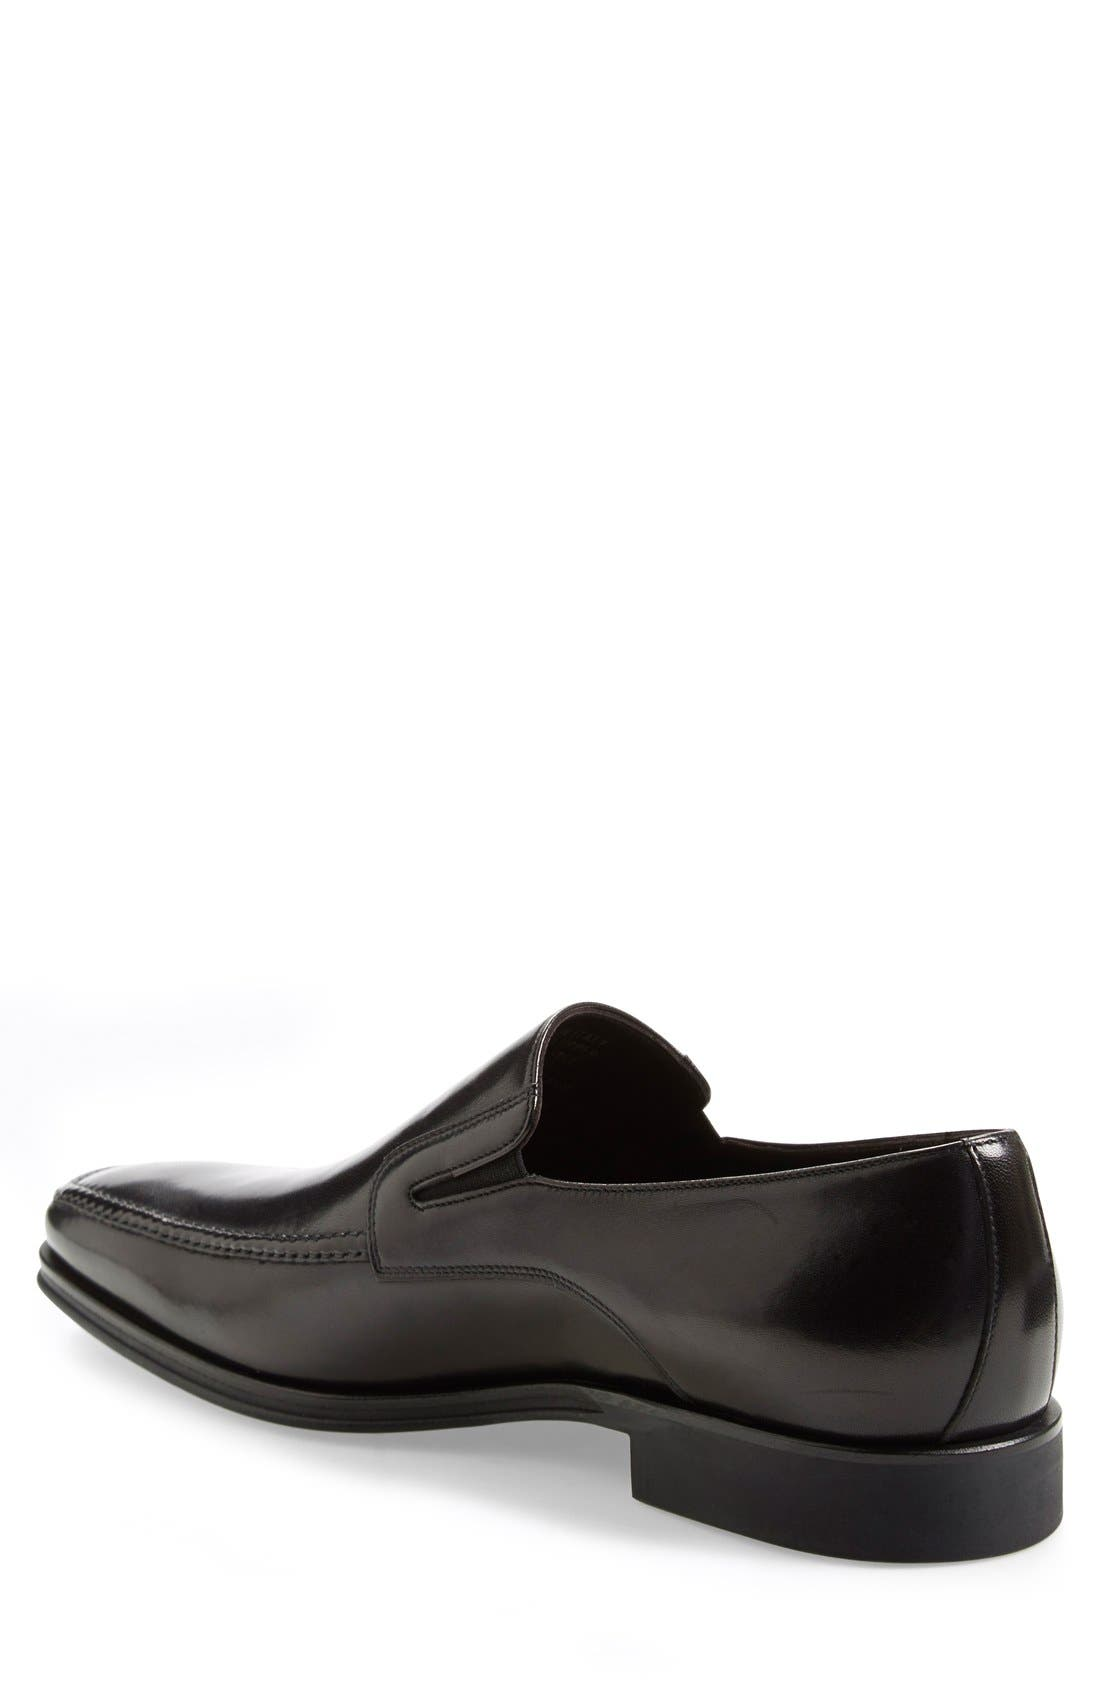 Lucca Nappa Leather Loafer,                             Alternate thumbnail 8, color,                             BLACK